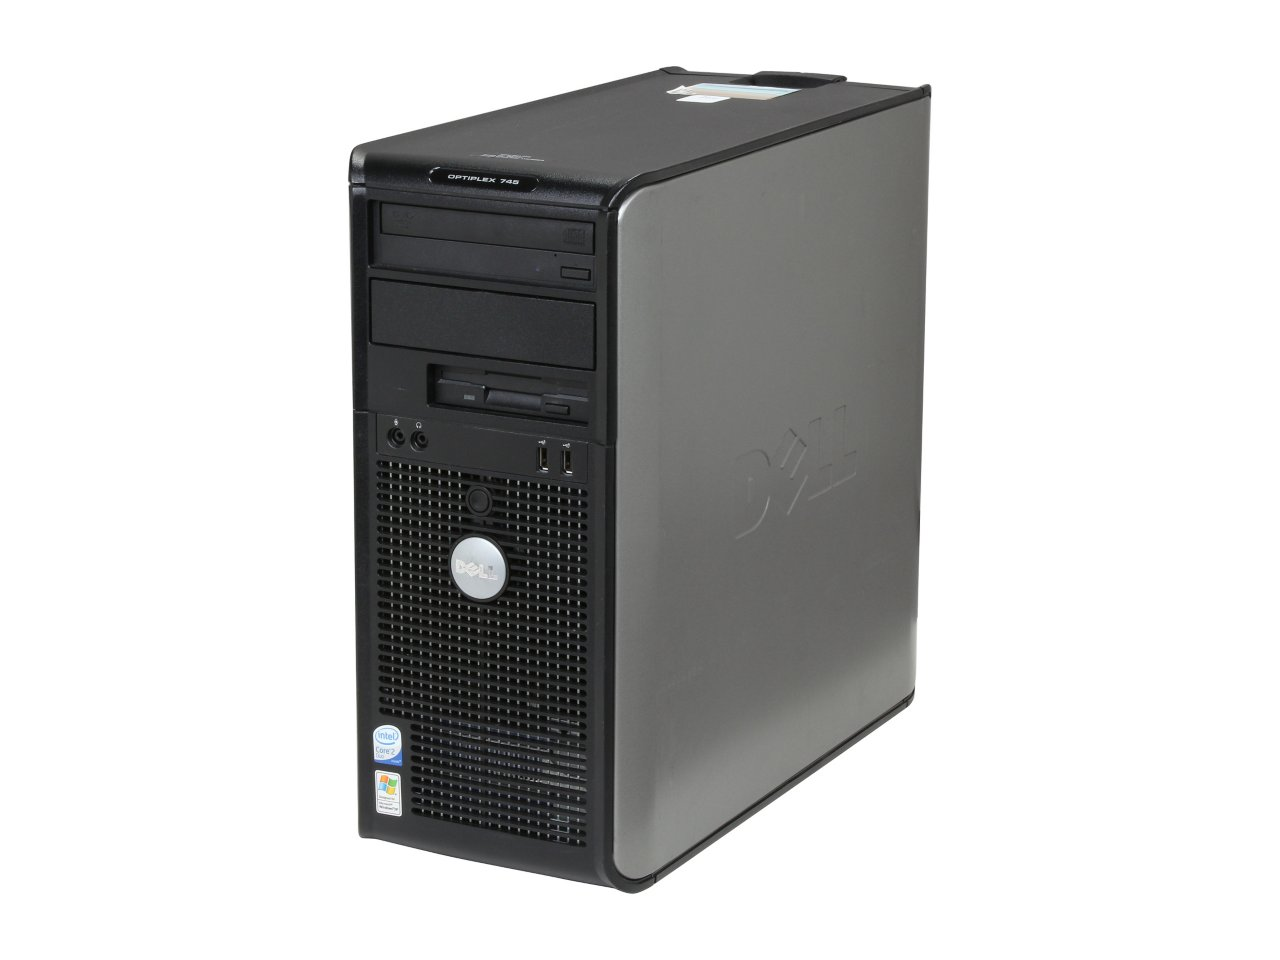 Dell Optiplex 745 ethernet driver